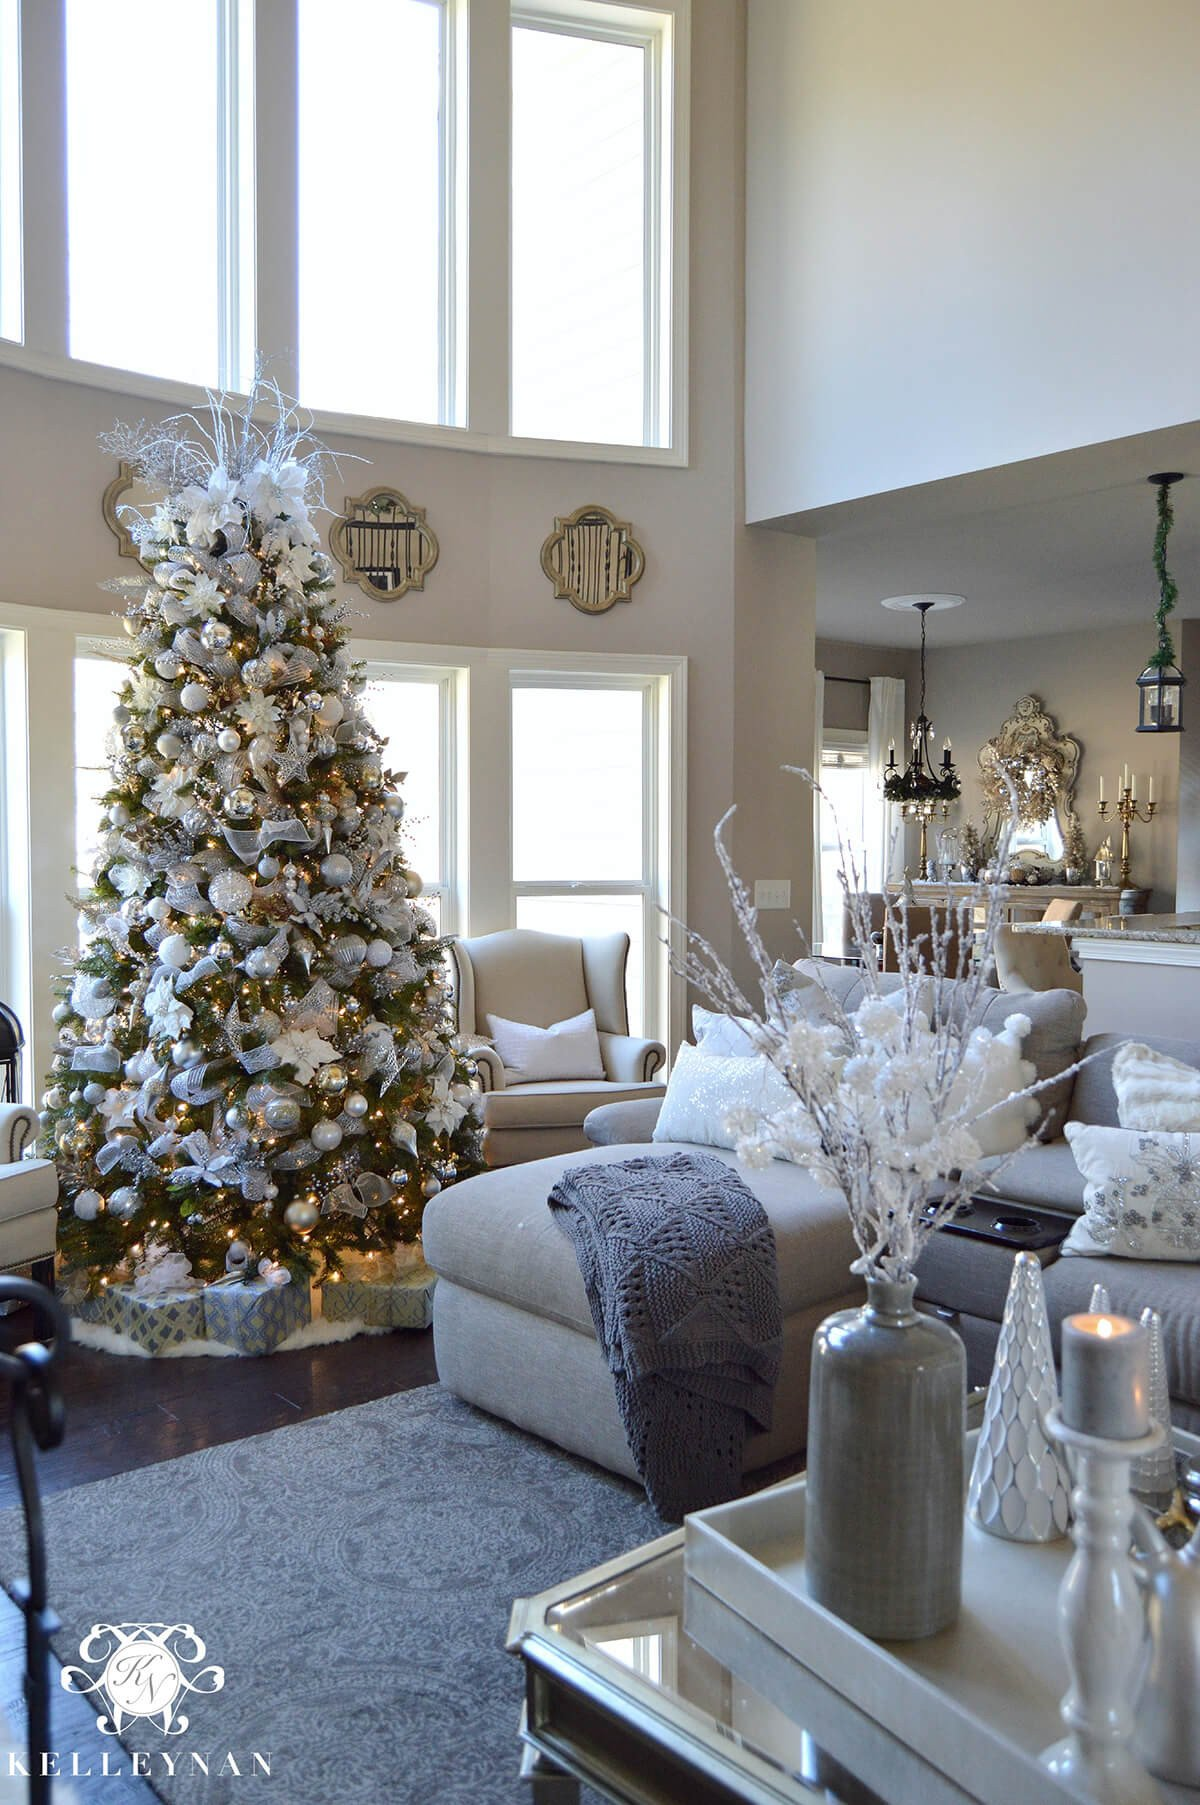 Modern Living Room Decorating Ideas Christmas Best Of 32 Best Christmas Living Room Decor Ideas and Designs for 2019